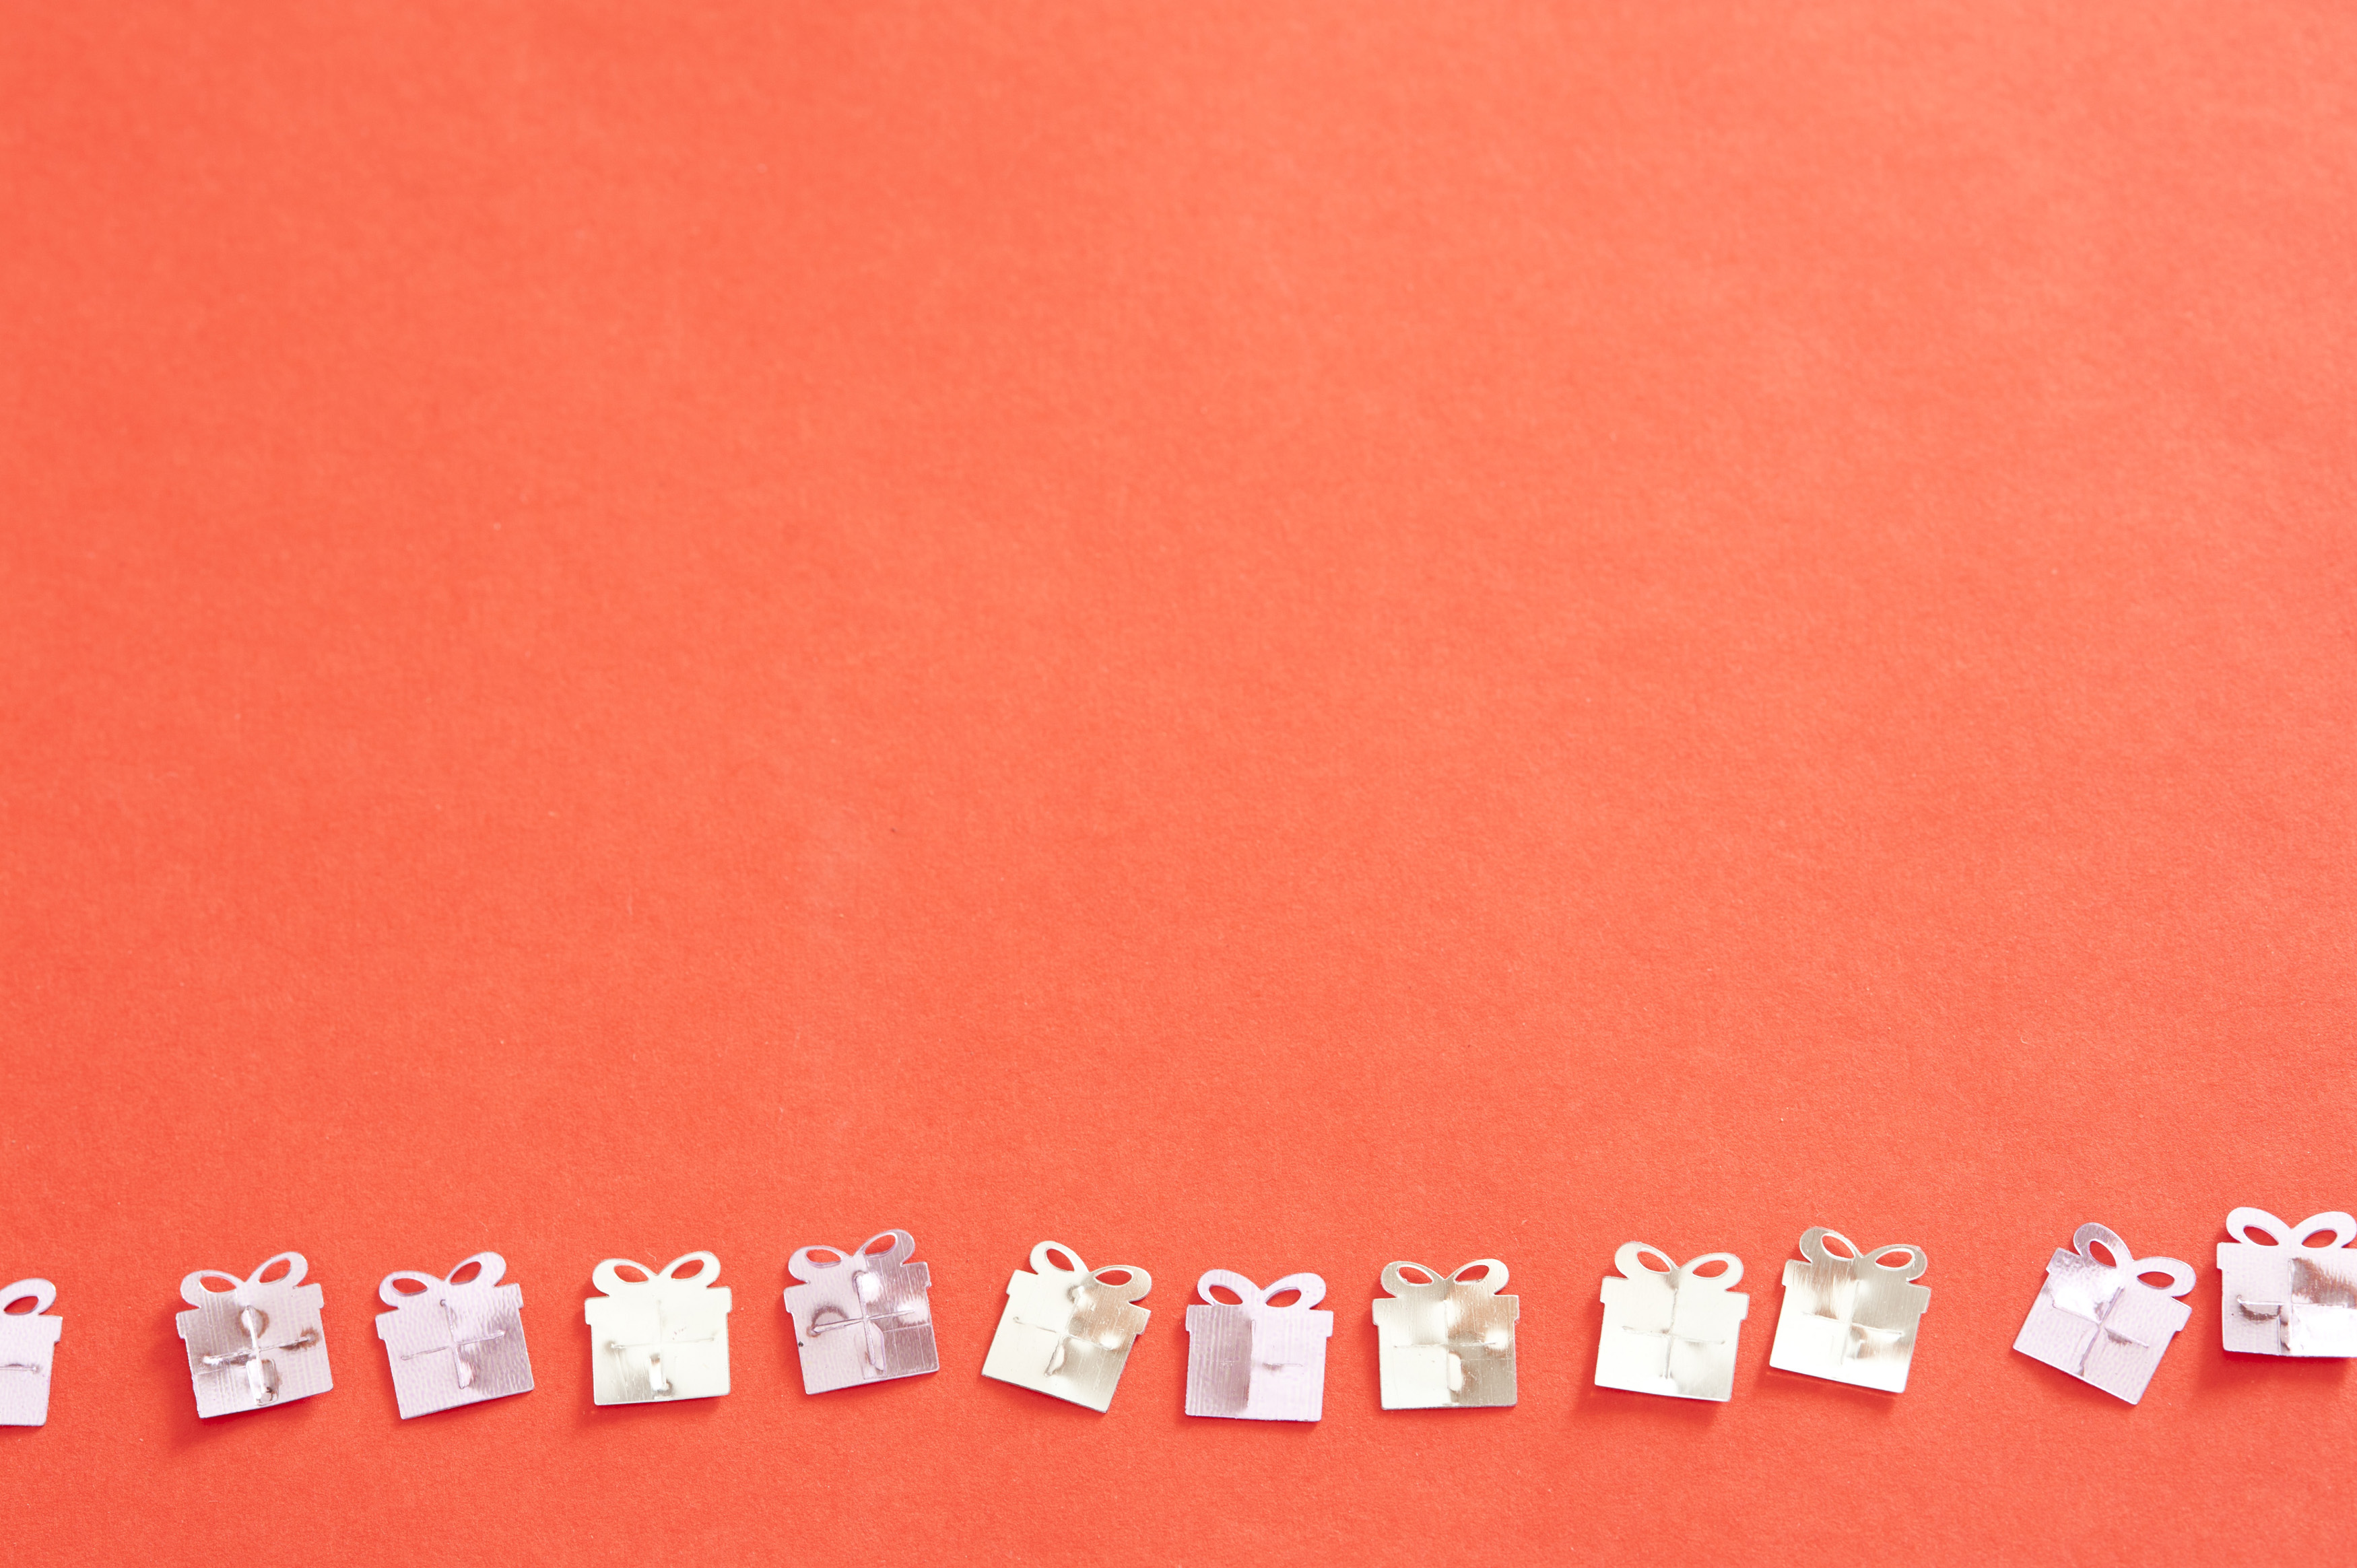 Free Stock Photo 11406 Silver Gift Confetti in a Row on ...